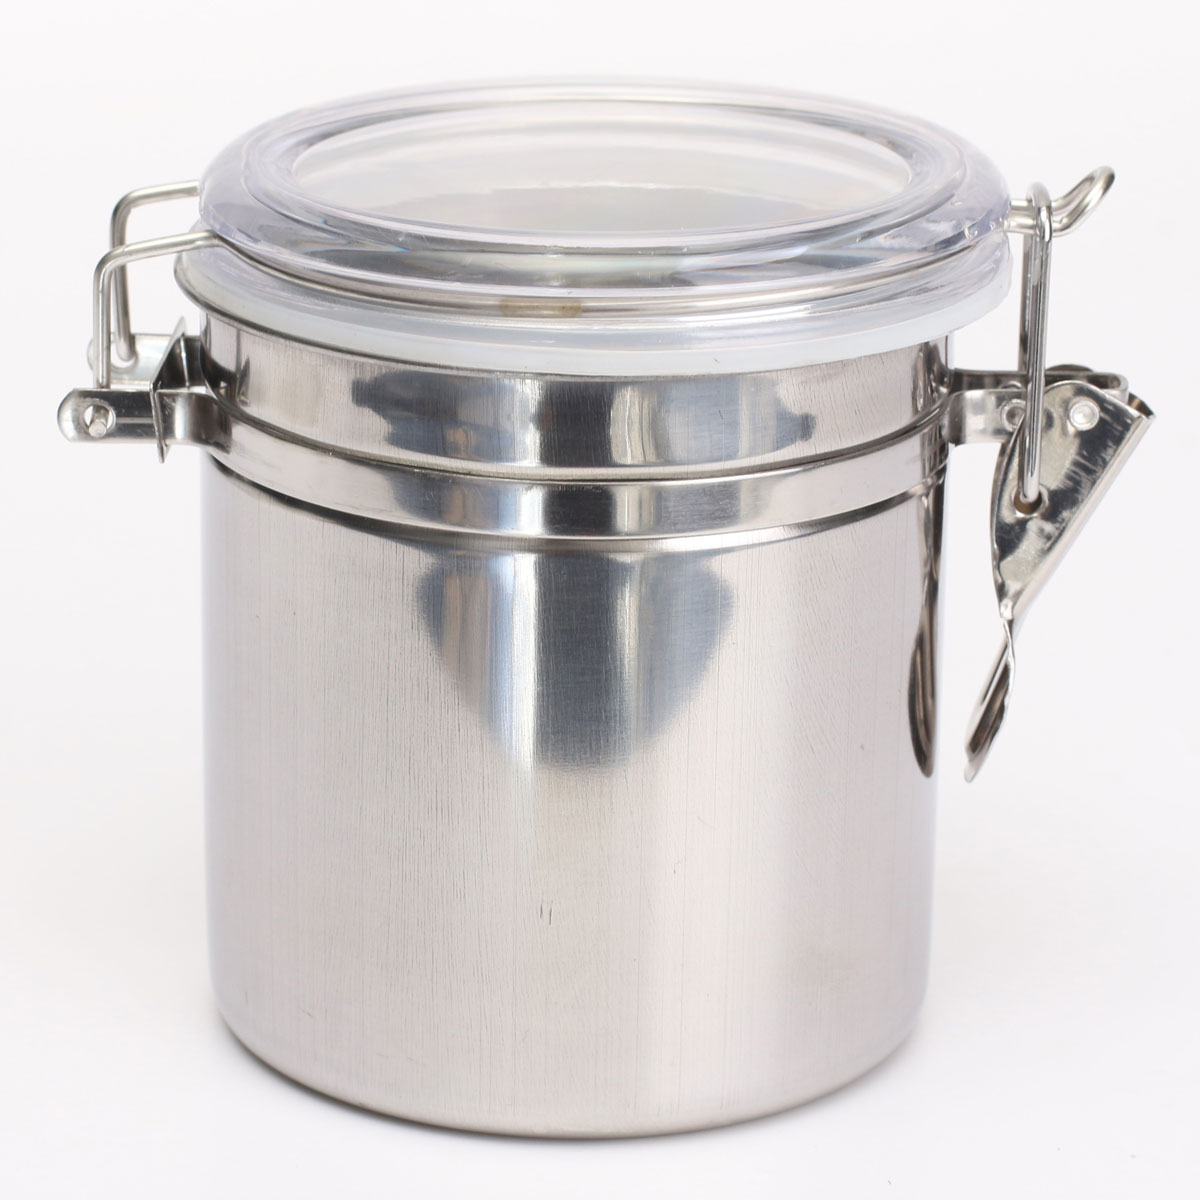 Kitchen Container Bo 4 Size Metal Storage Food Bottles Sugar Tea Coffee Beans Canisters Snack Cans Tools In Bins From Home Garden On